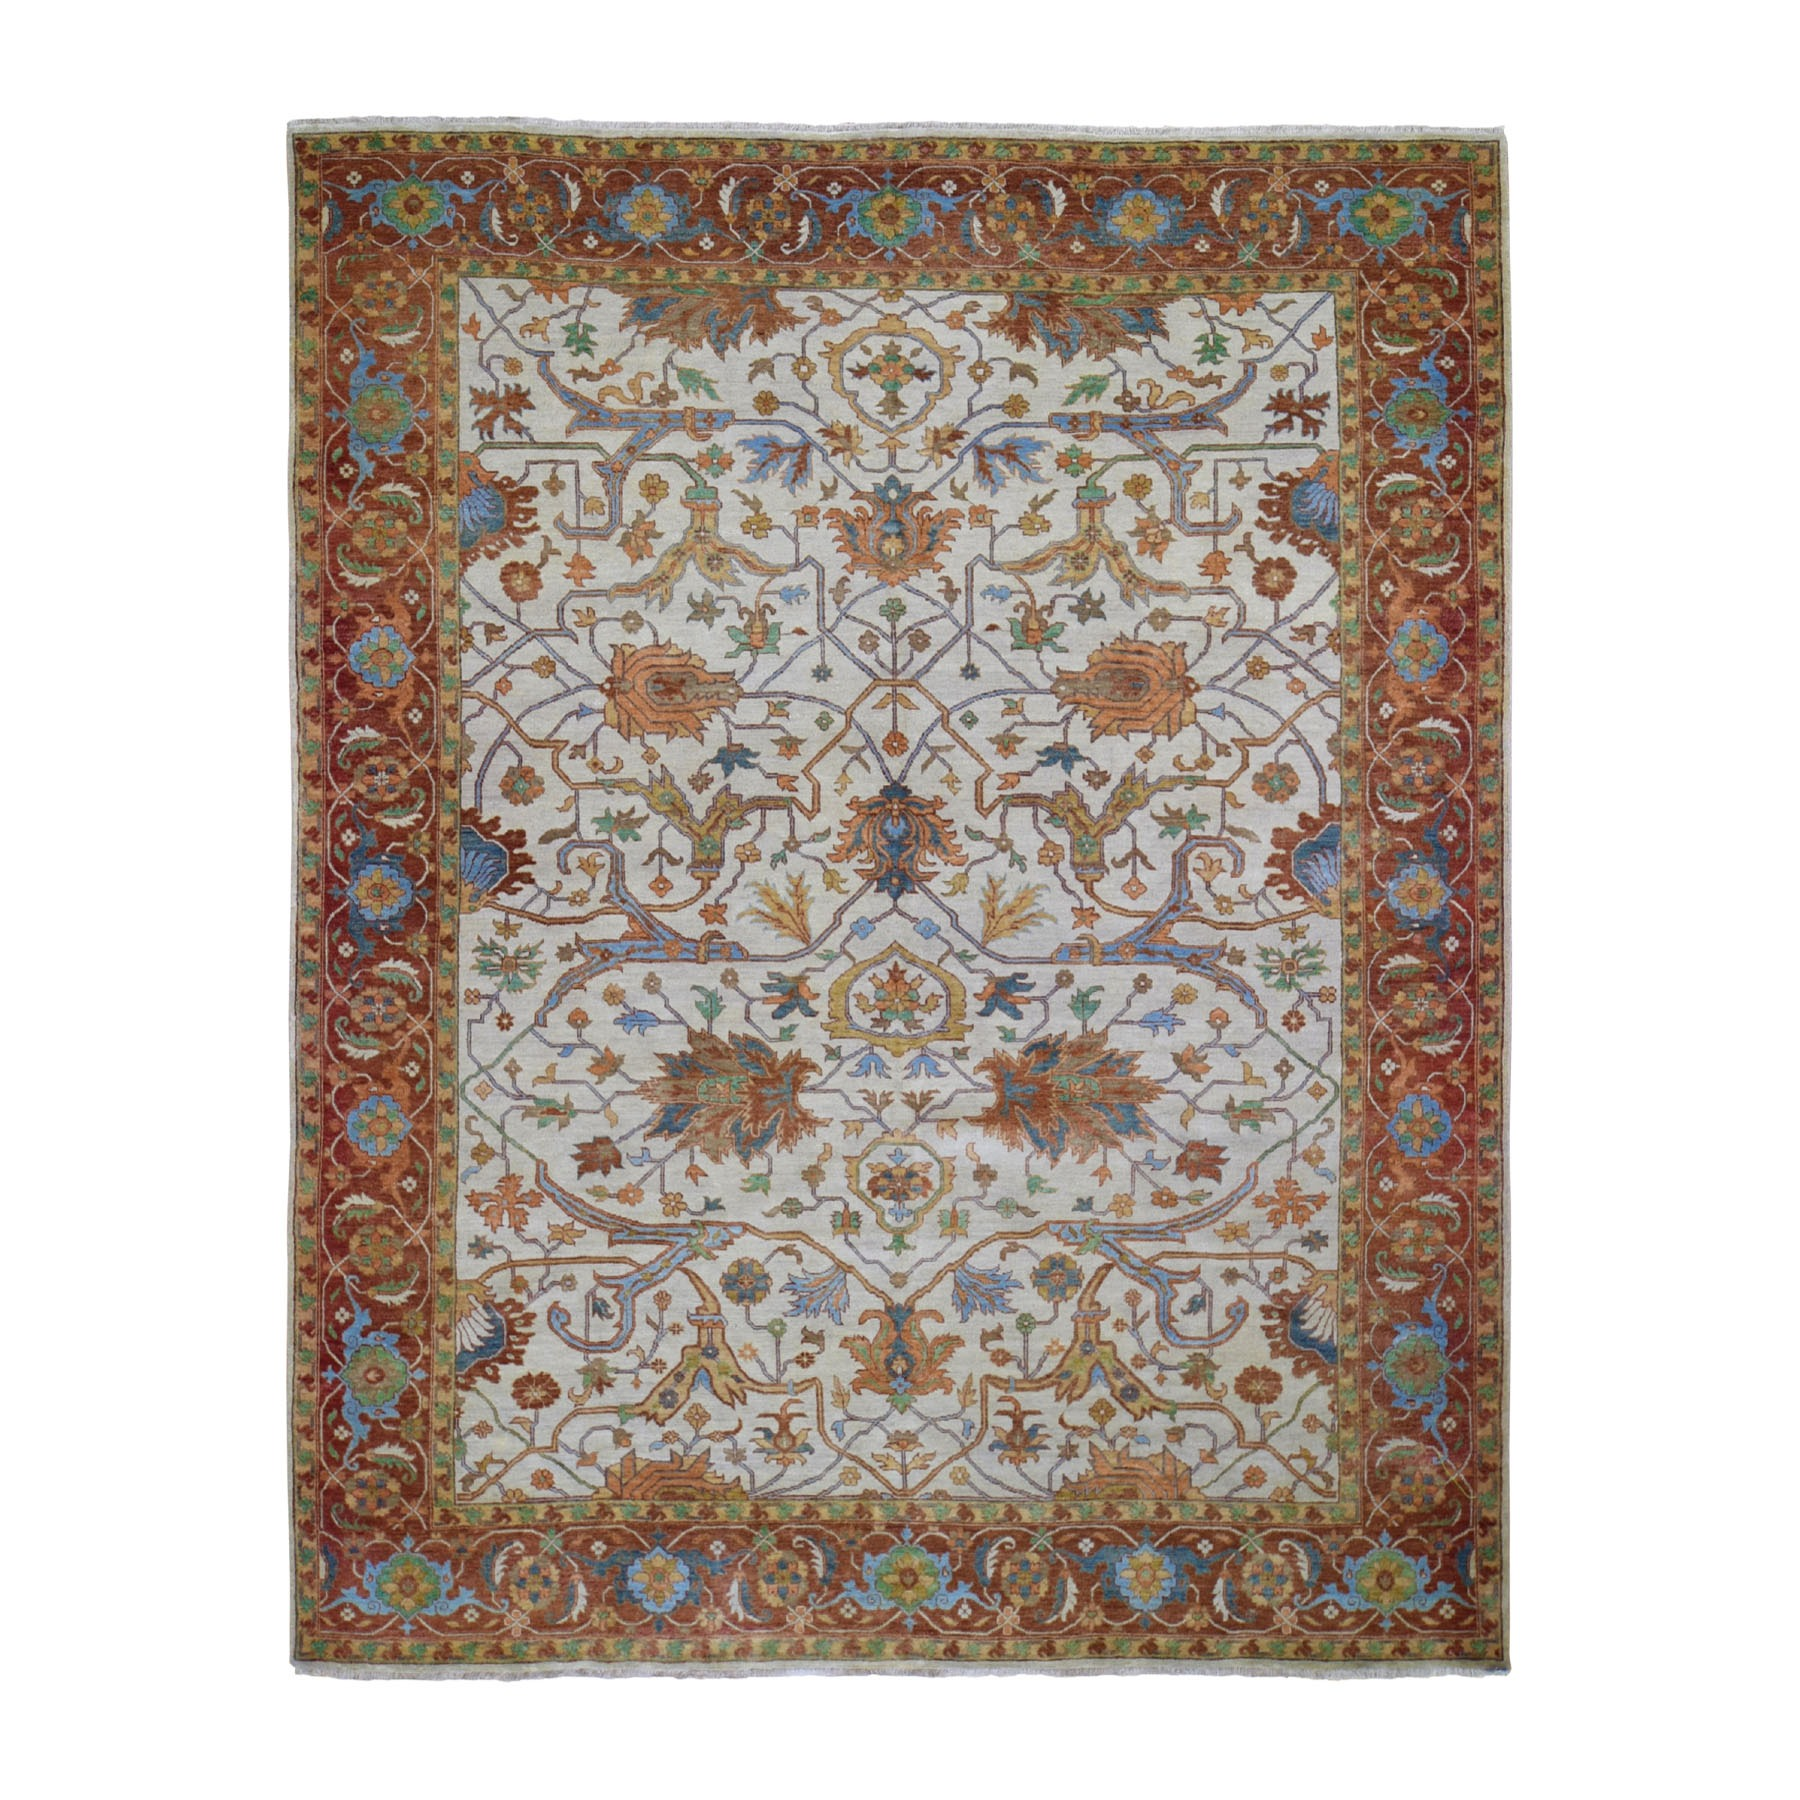 "8'1""x10' Ivory Heriz Re-Creation Vegetable DyesPure Wool Hand Woven Oriental Rug"